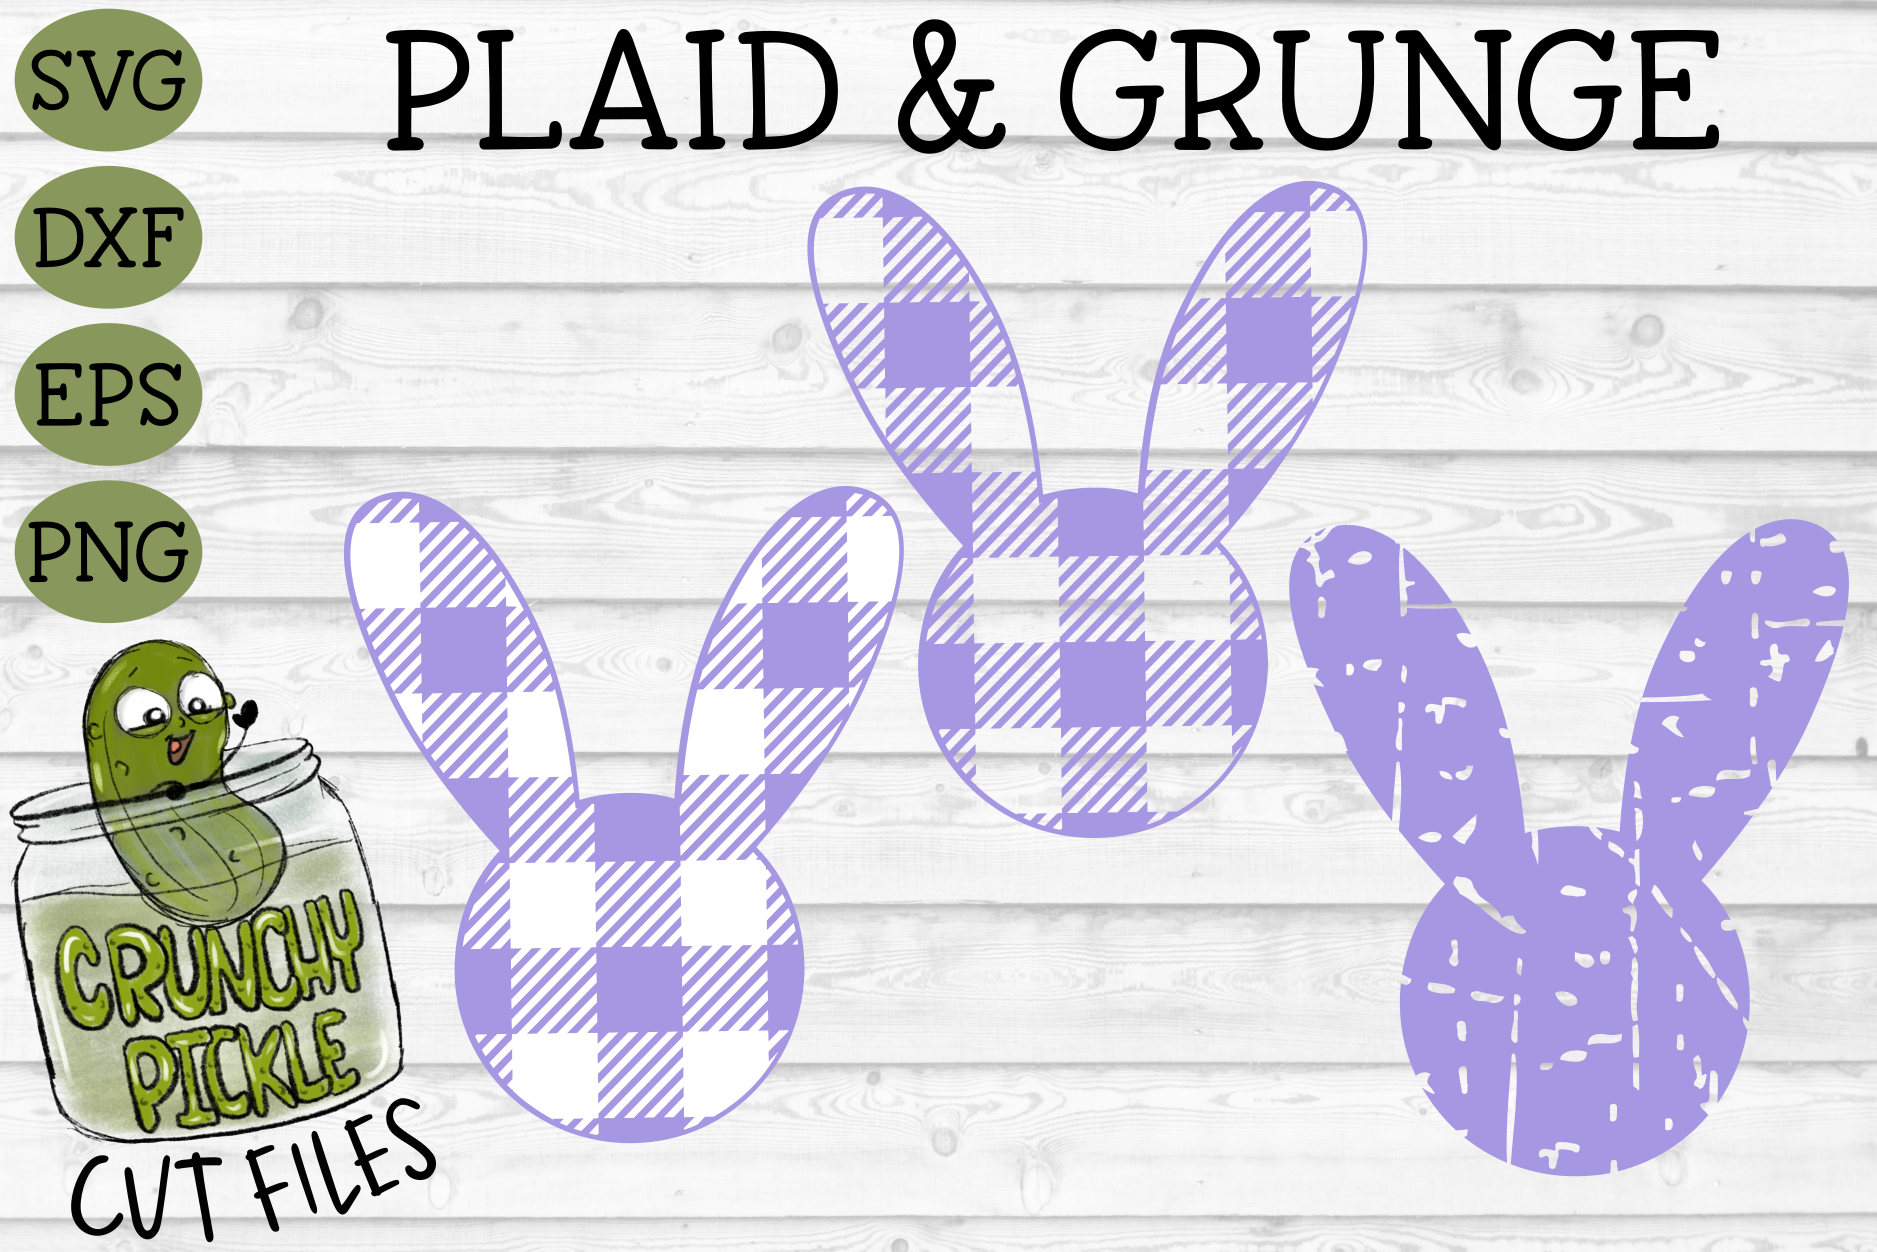 Plaid & Grunge Spring Easter Bunny 2 SVG Cut File example image 1